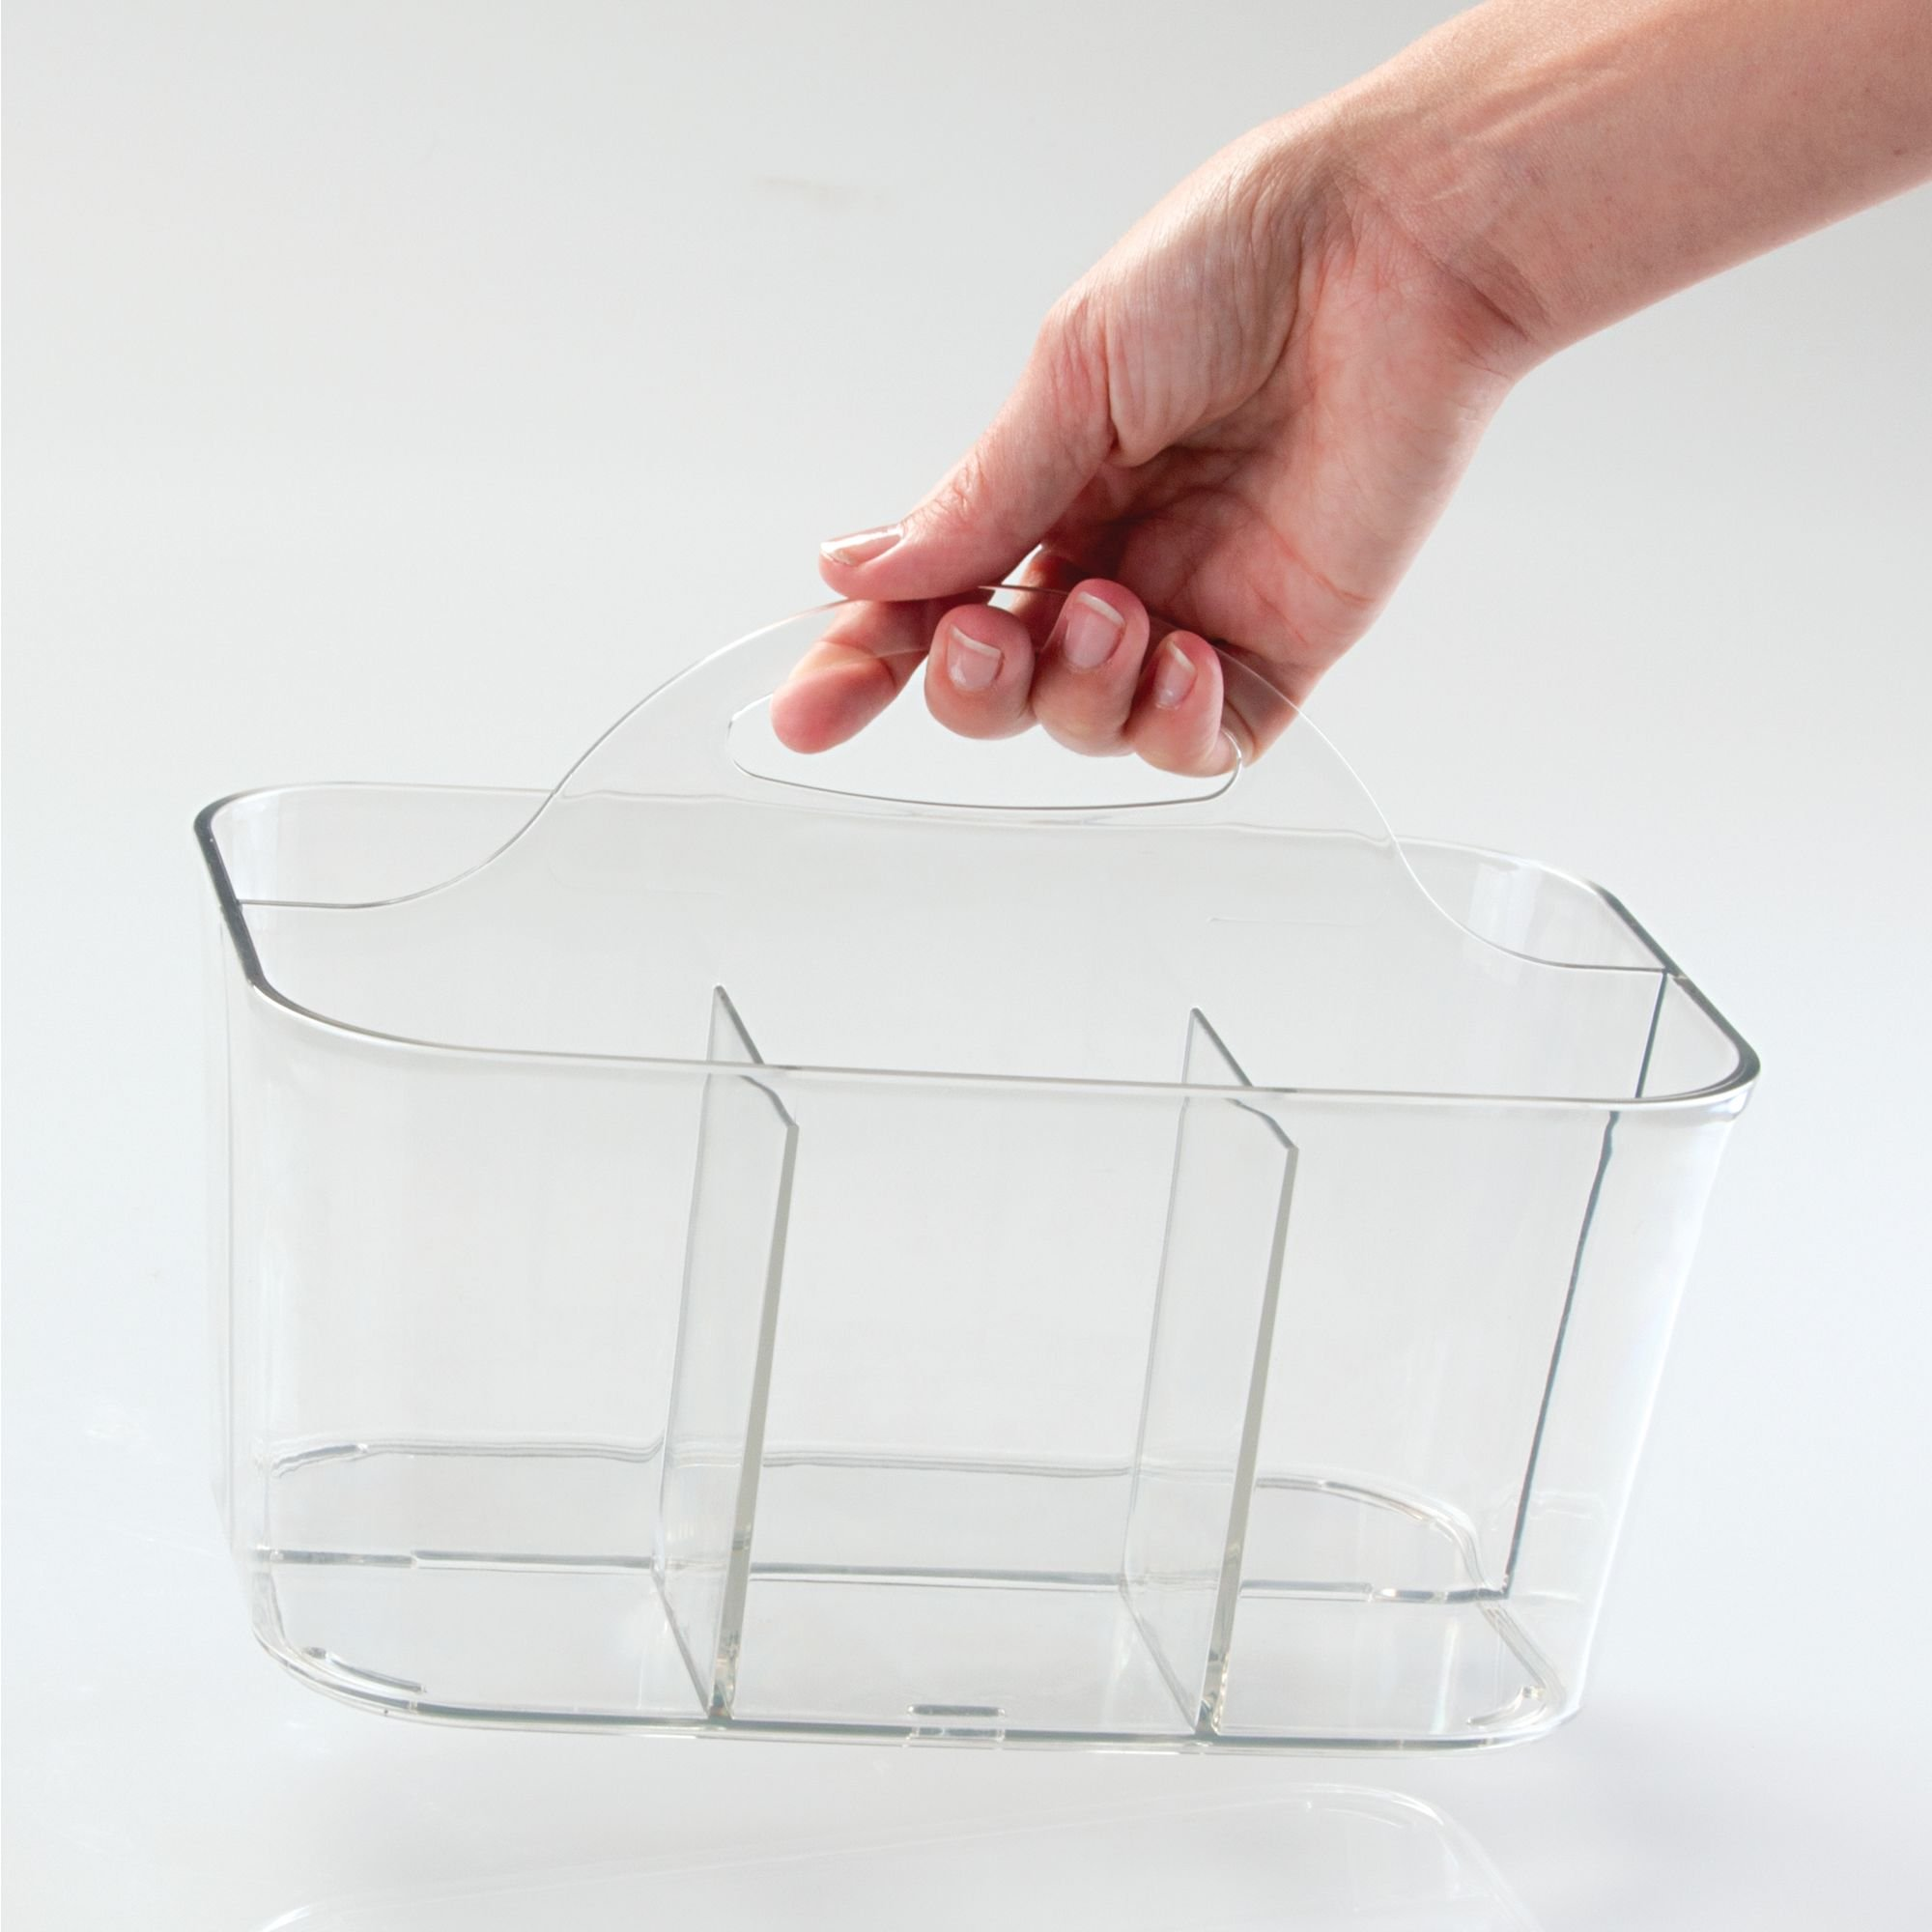 InterDesign Clarity Cutlery Flatware Caddy, Silverware, Utensil, and Napkin Holder - Clear by InterDesign (Image #7)